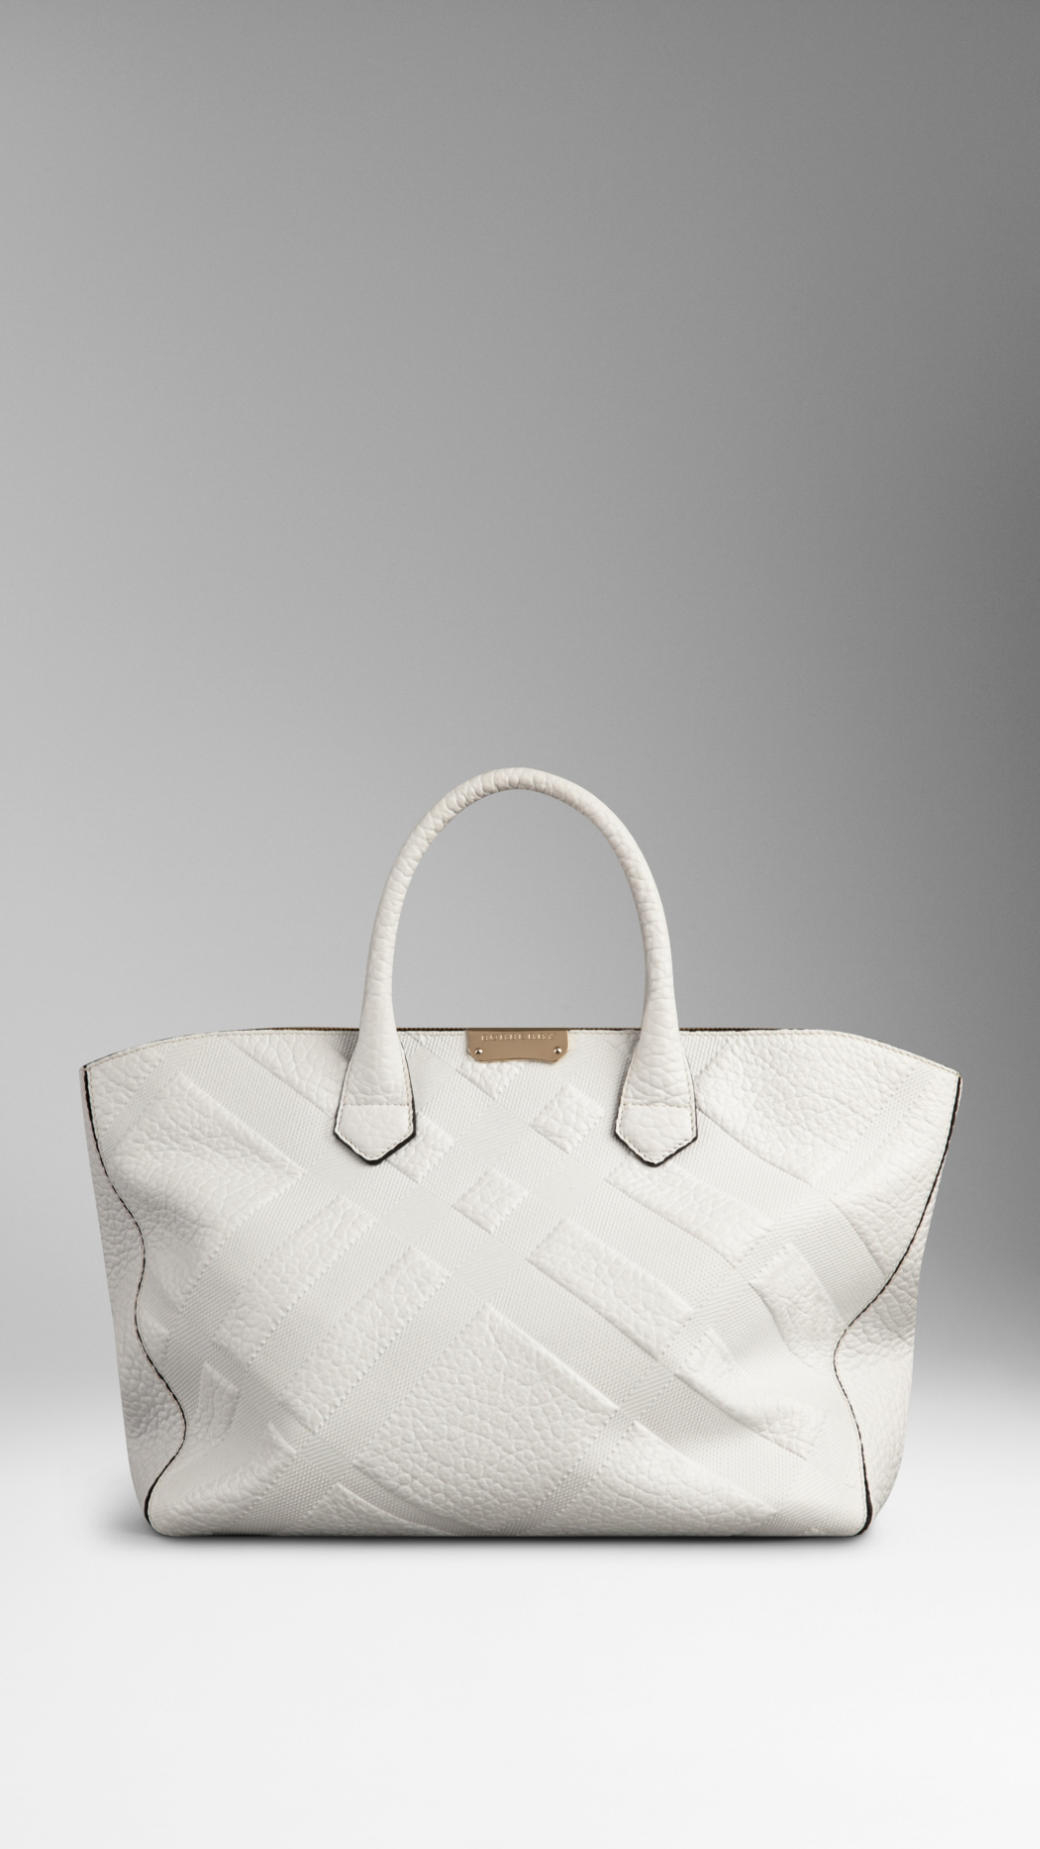 Lyst - Burberry Medium Embossed Check Leather Tote Bag in White 80c1471ca60de